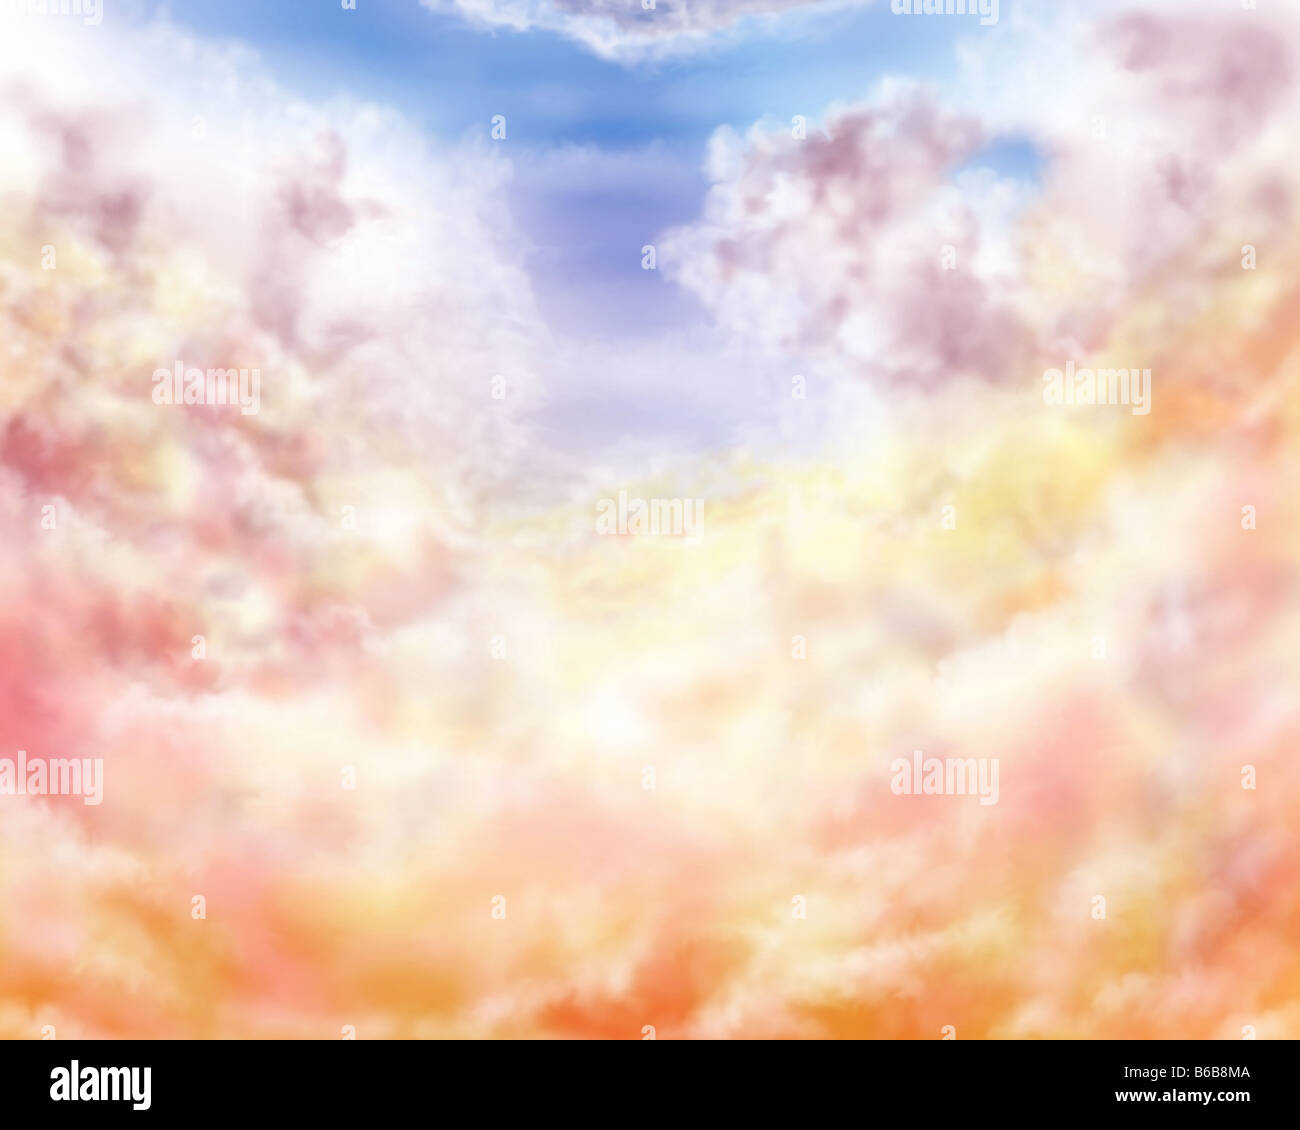 Illustration of golden and pastel impressionistic clouds - Stock Image